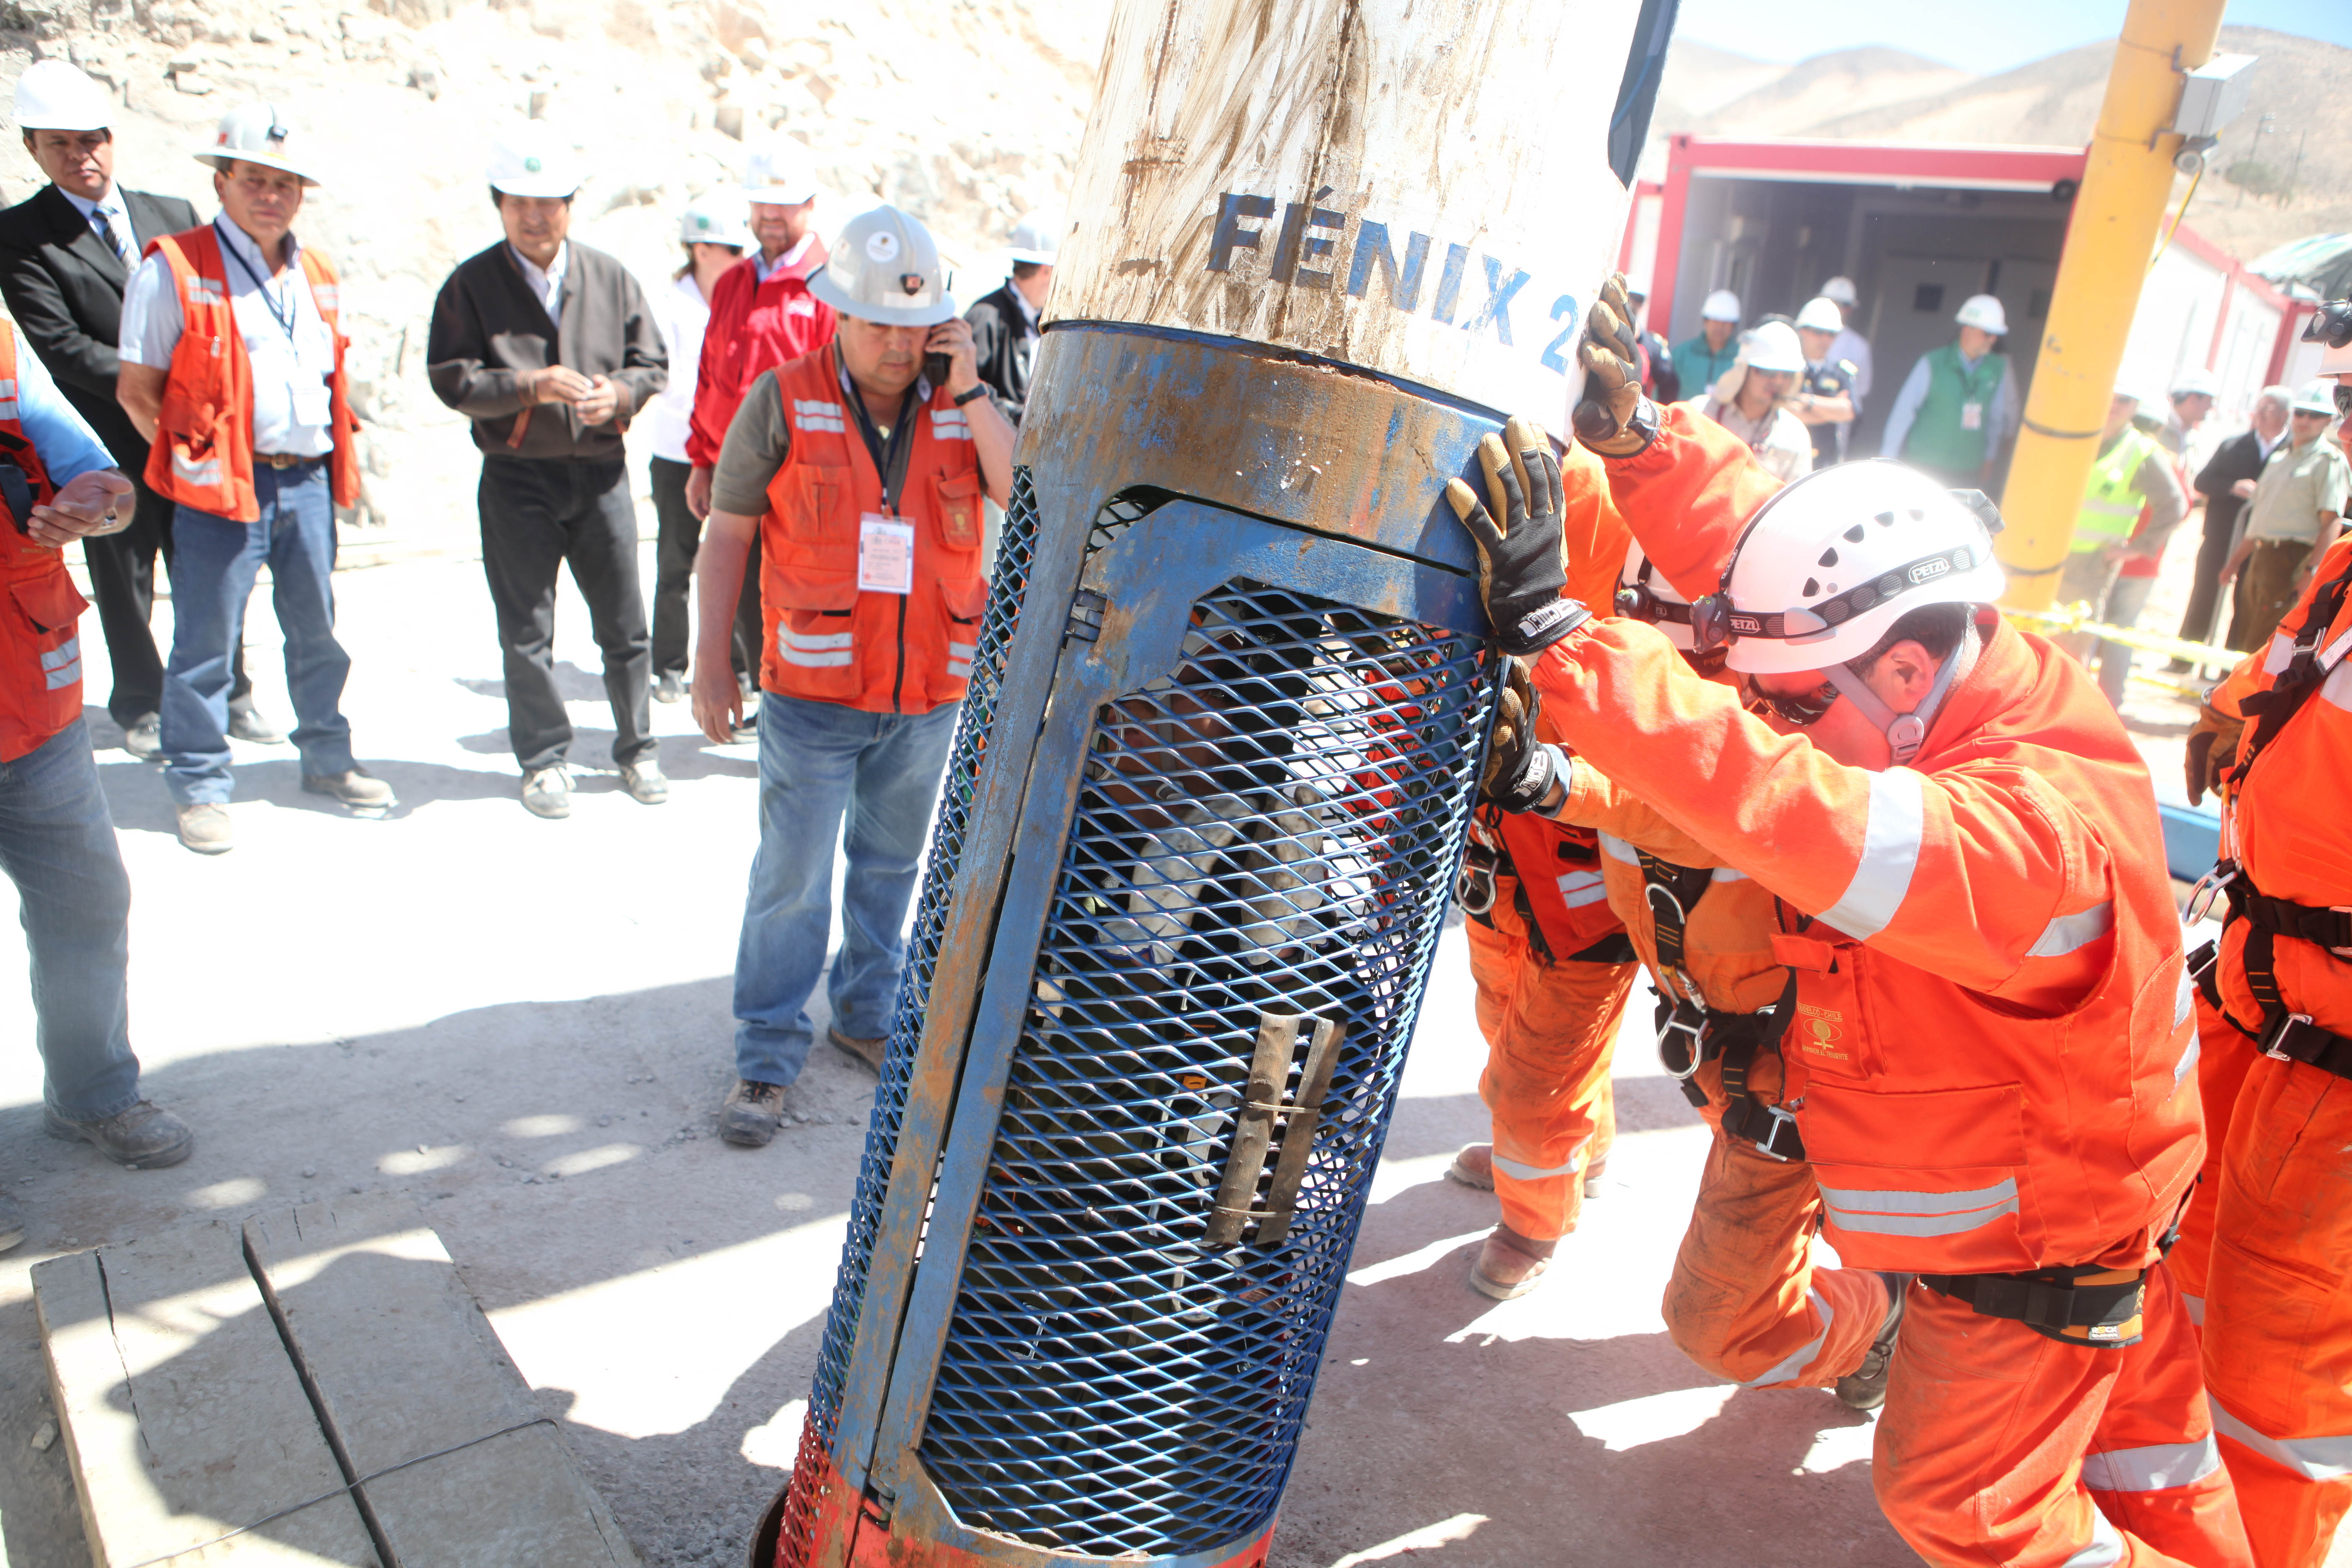 chilean mine The heroic rescue of 33 chilean miners, trapped for nearly 70 days, riveted the world but the miraculous story is about the leadership of shift boss luis urzua.